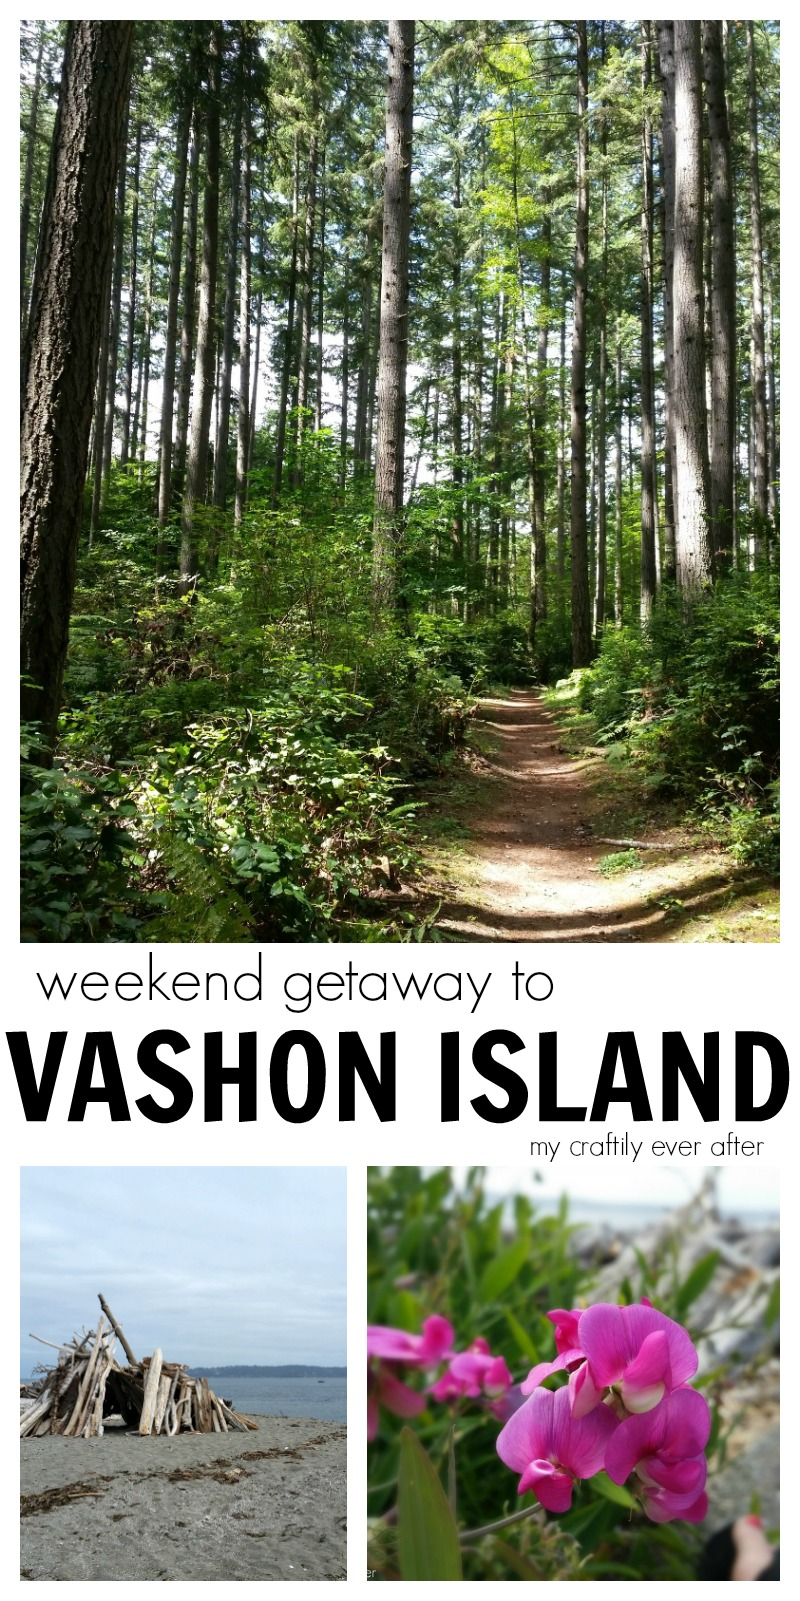 weekend getaway to vashon island